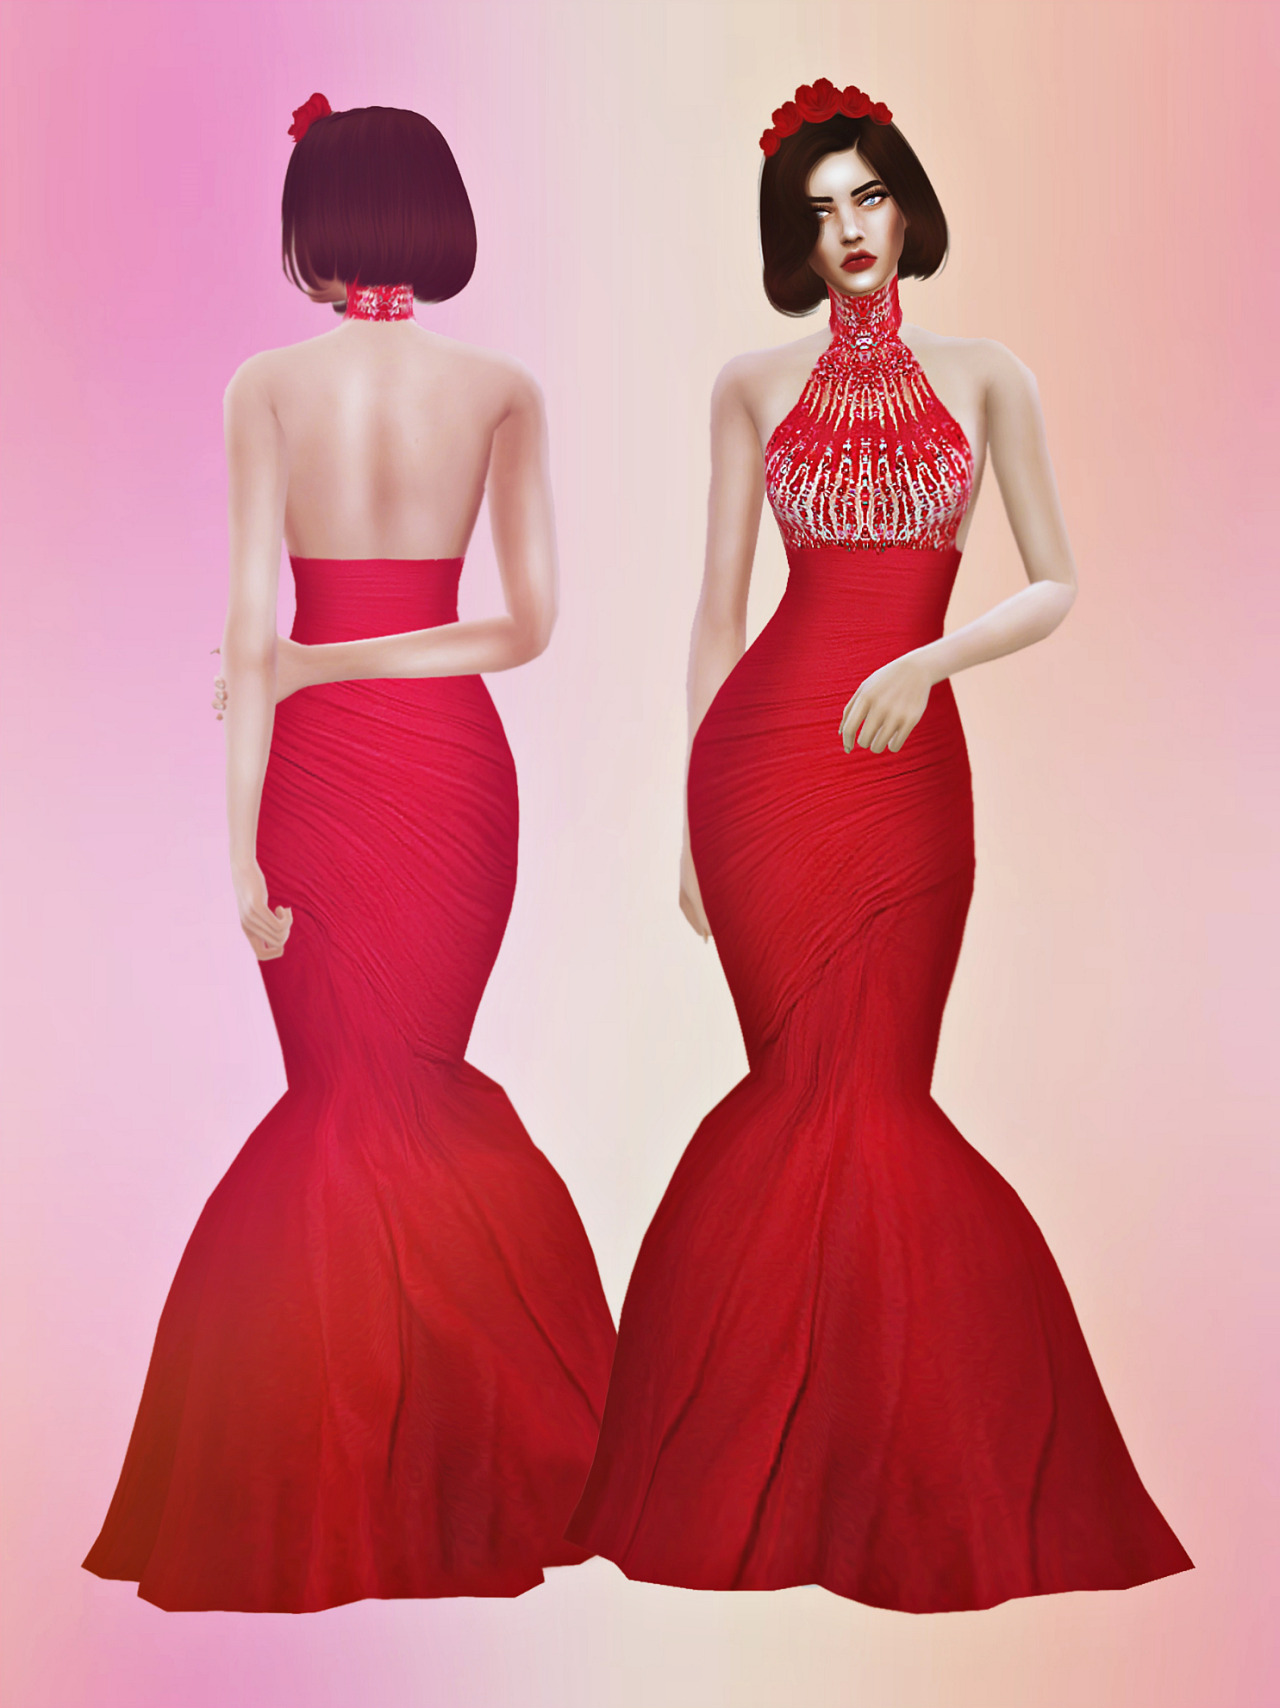 ZM Crimson Gown by FashionRoyaltySims